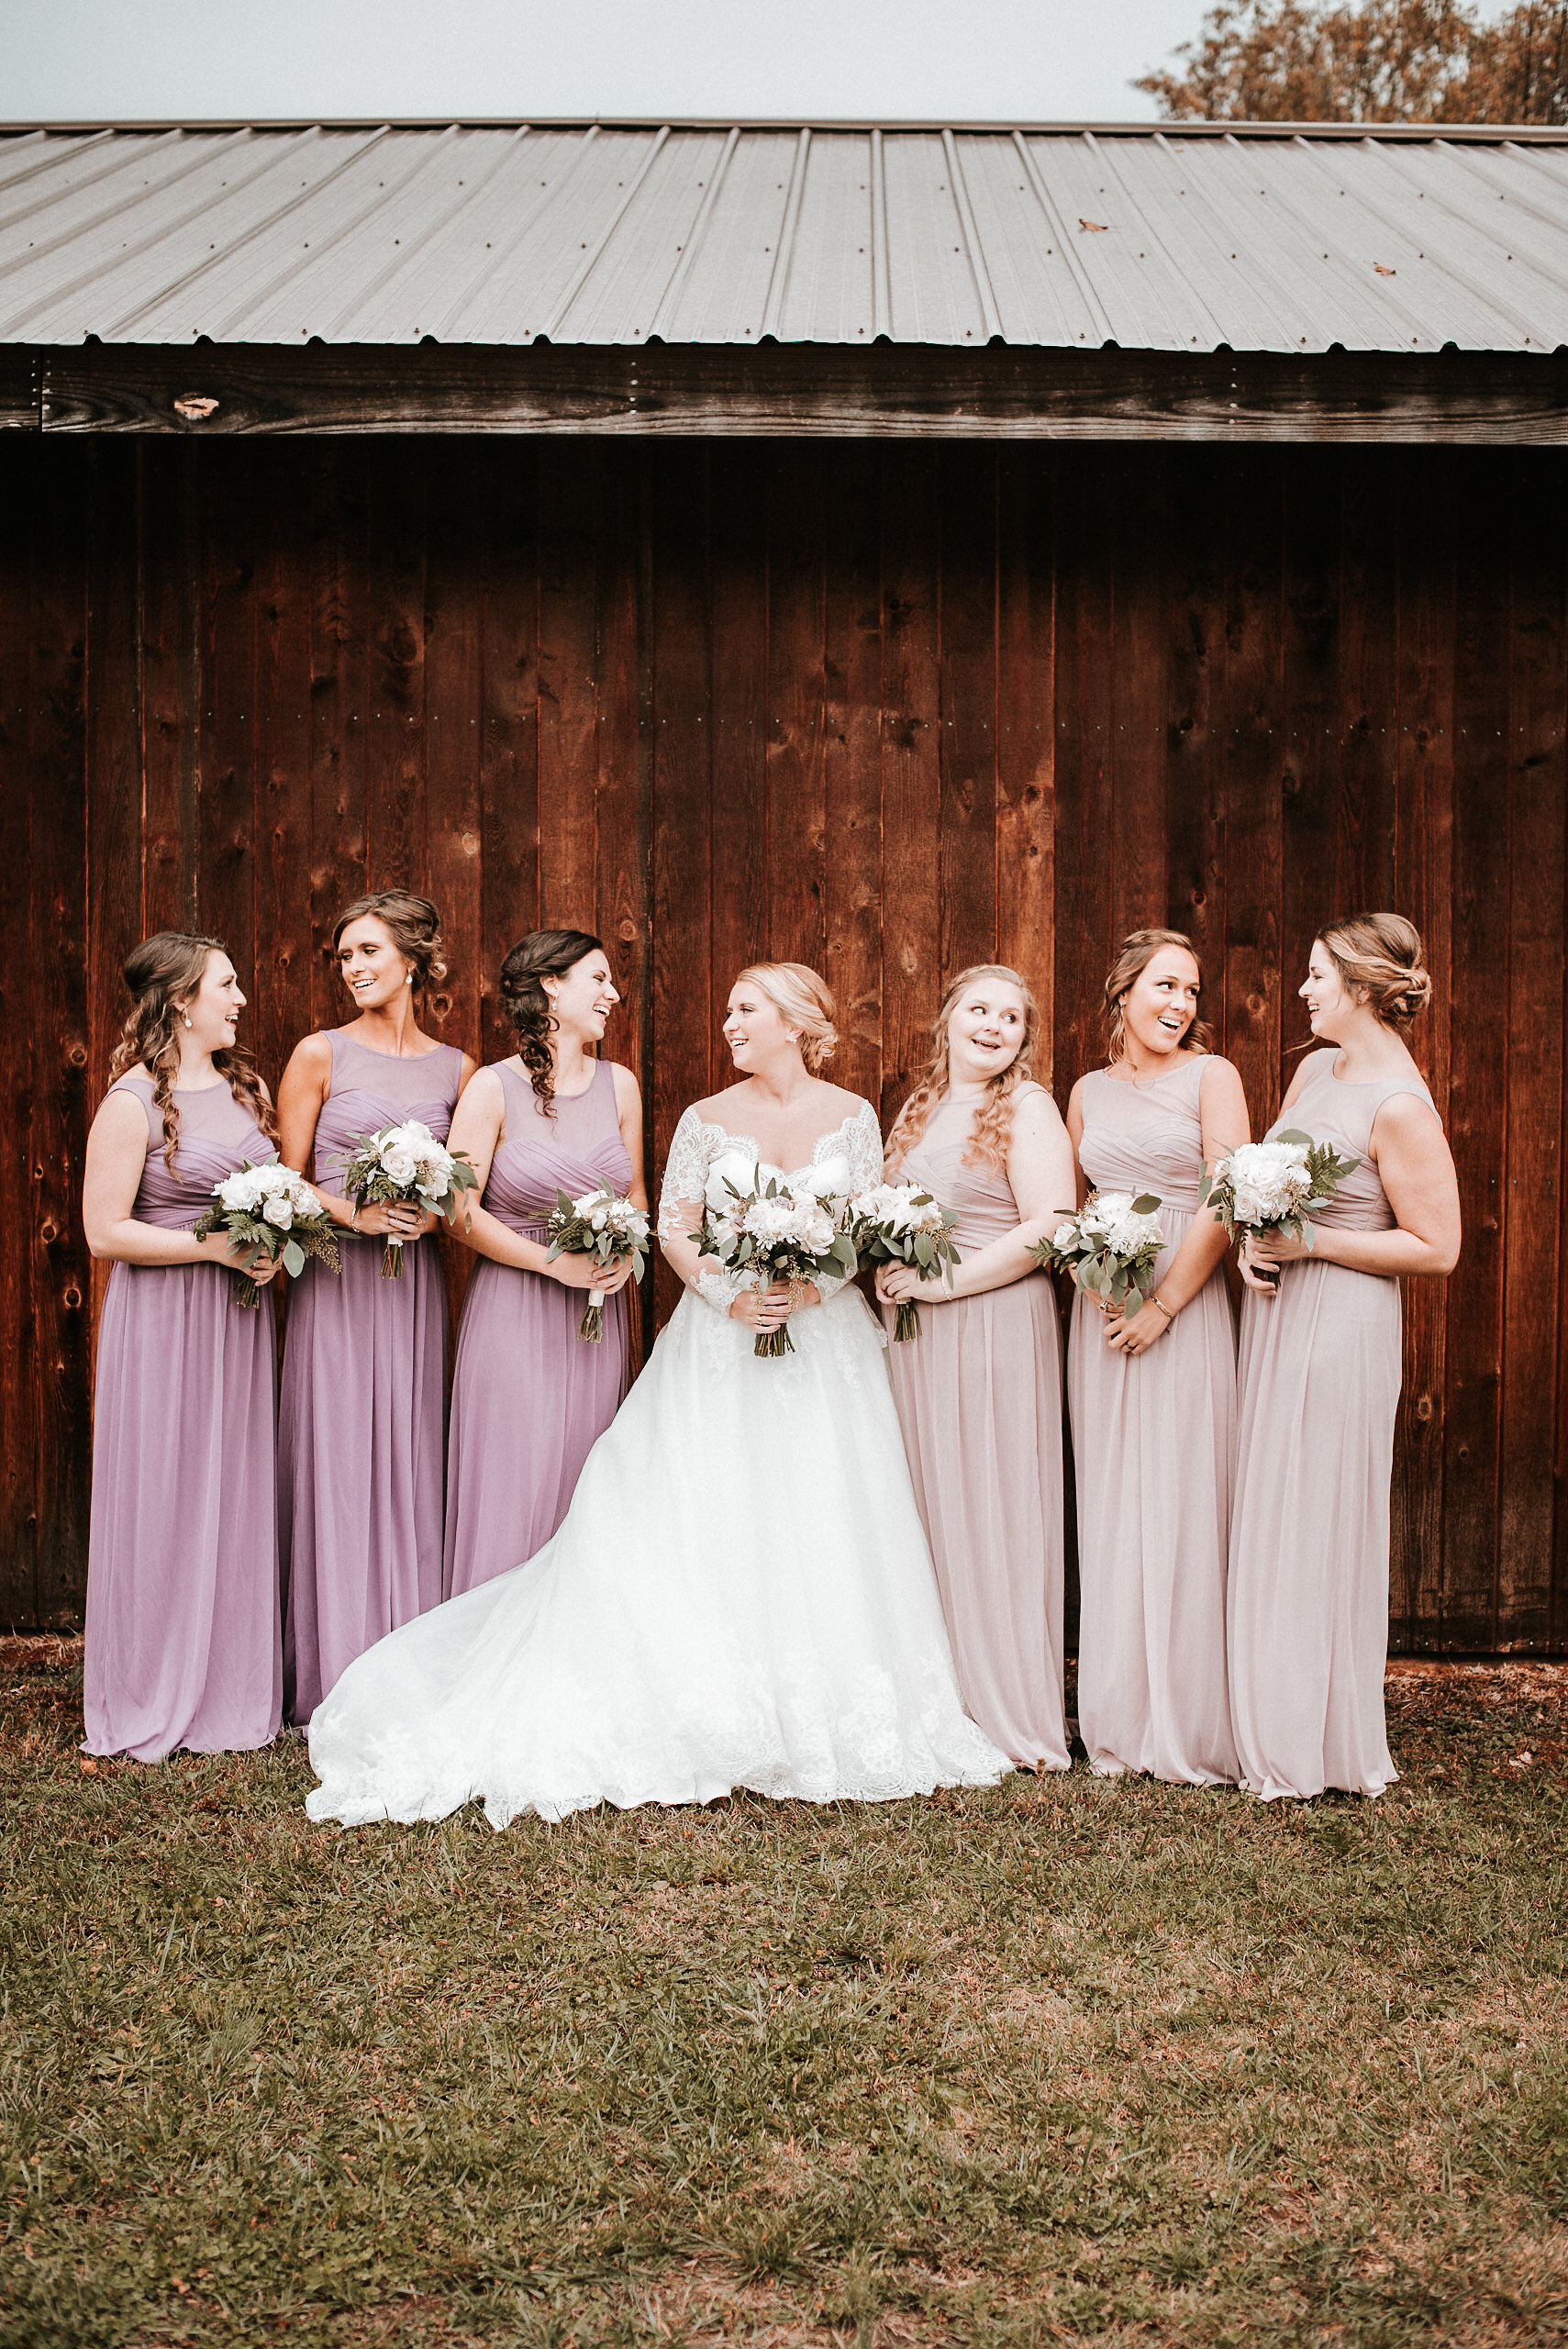 Bride and bridesmaids standing against barn